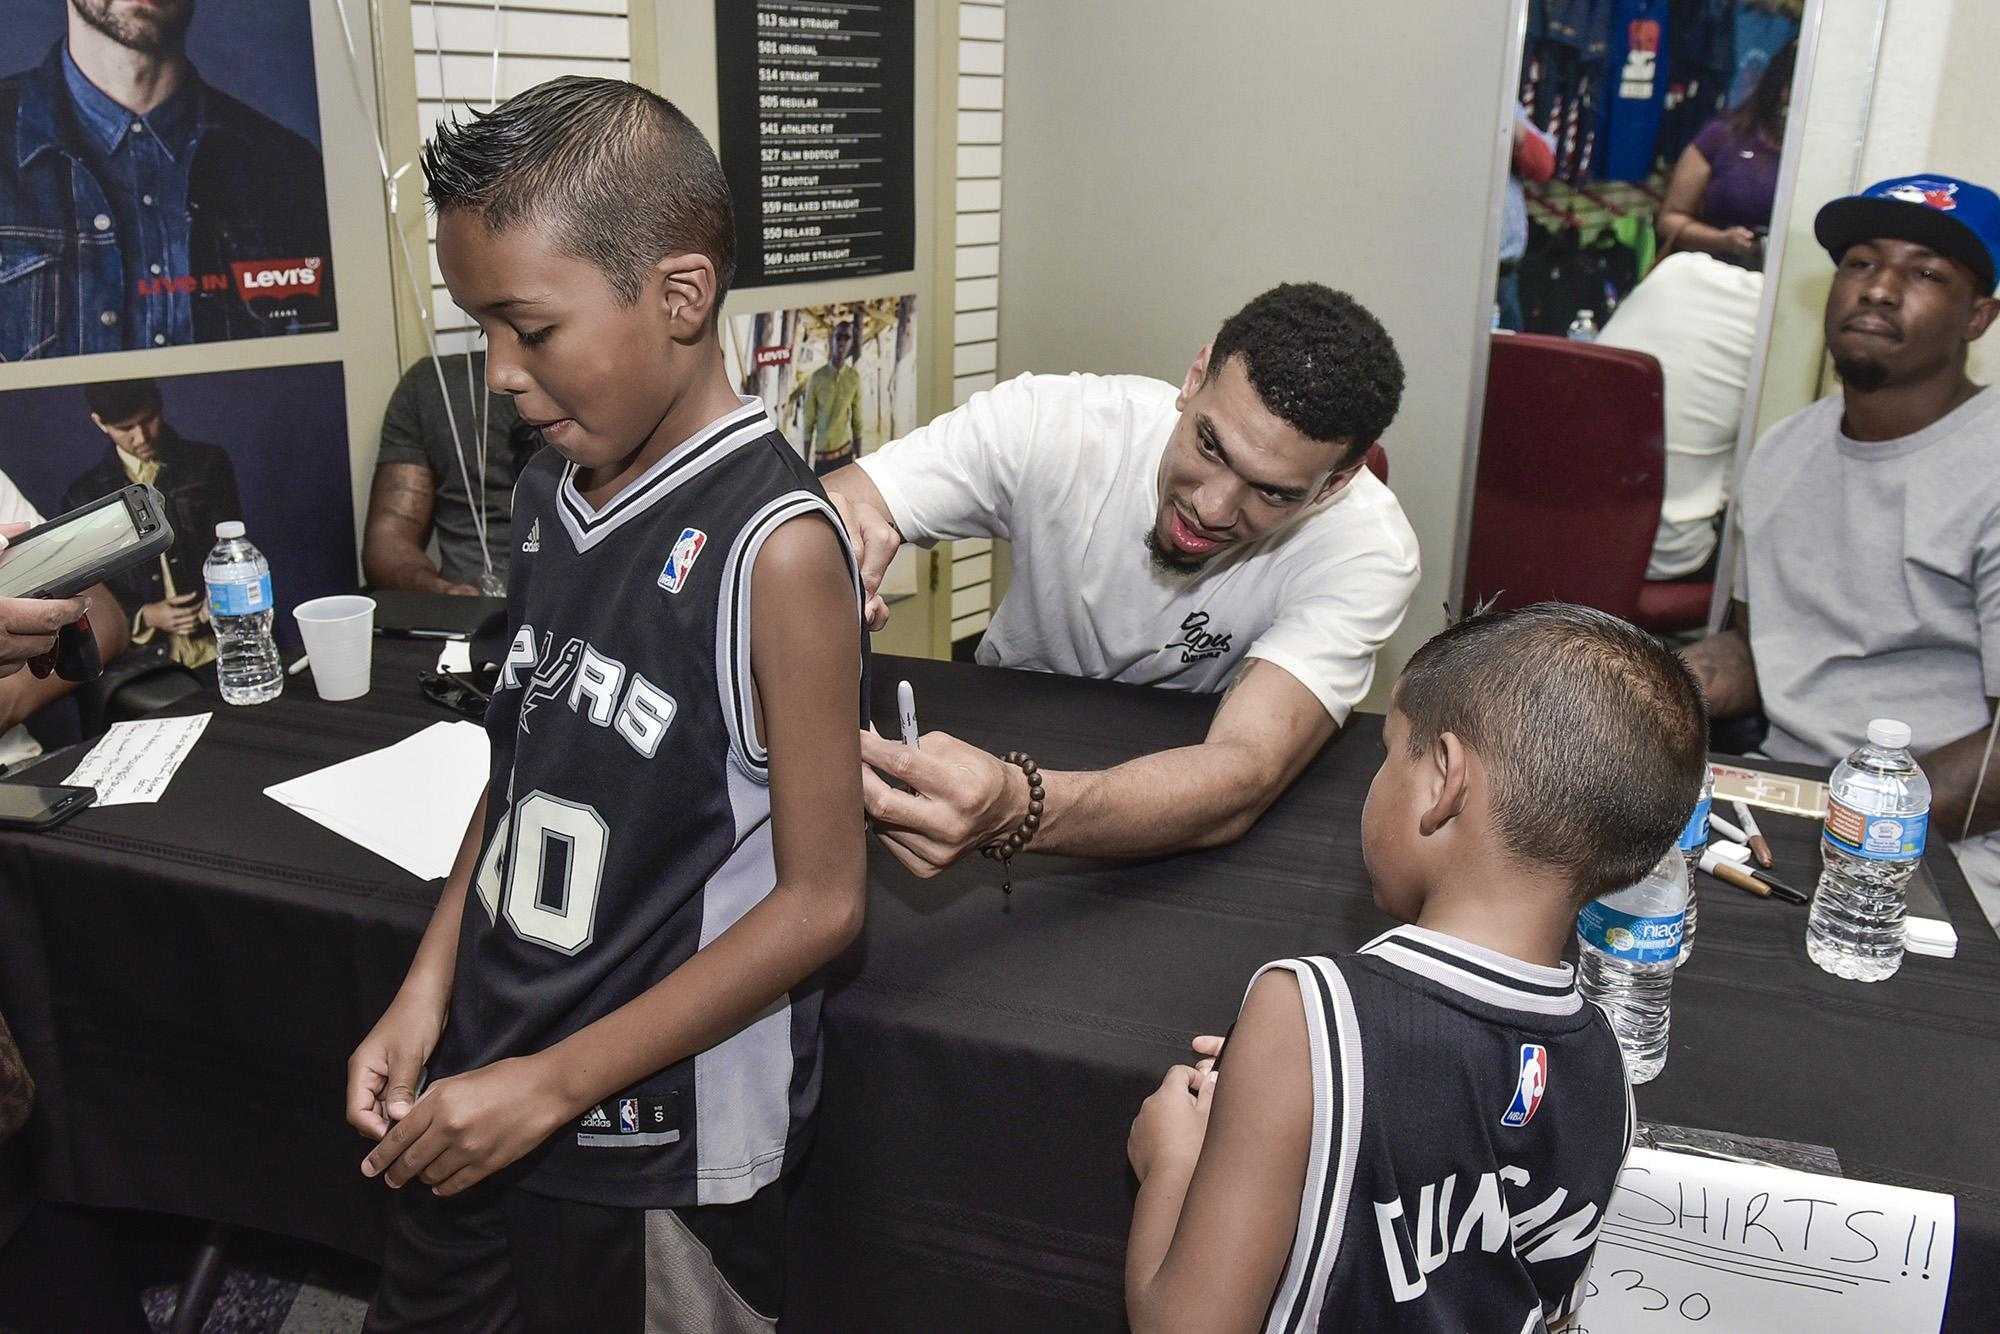 d5f41f89e Danny Green chooses to stay with Spurs - San Antonio Express-News